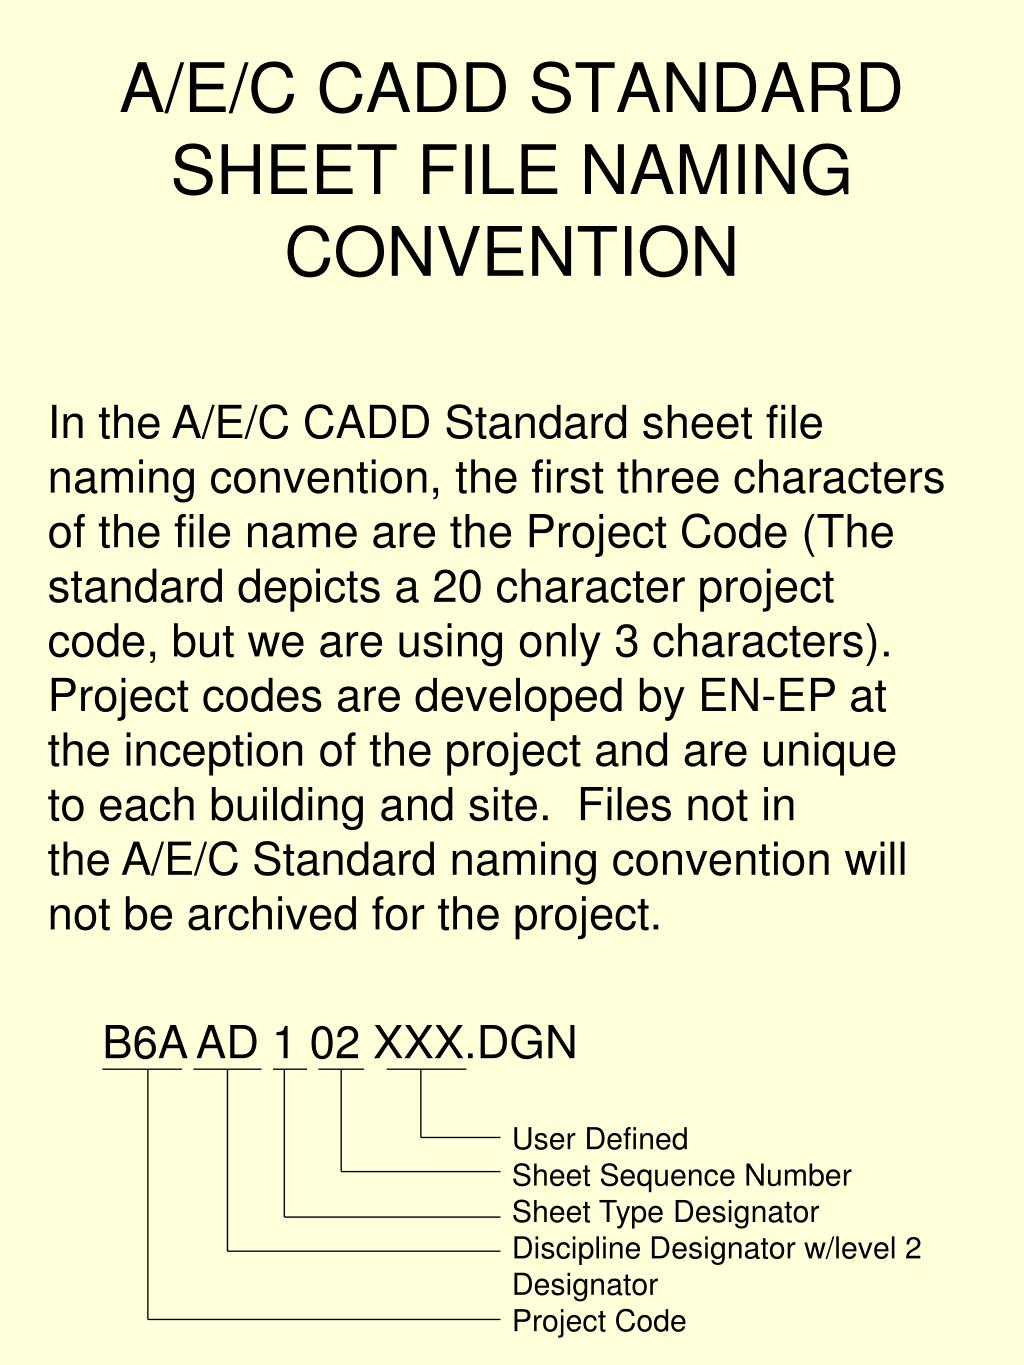 A/E/C CADD STANDARD SHEET FILE NAMING CONVENTION